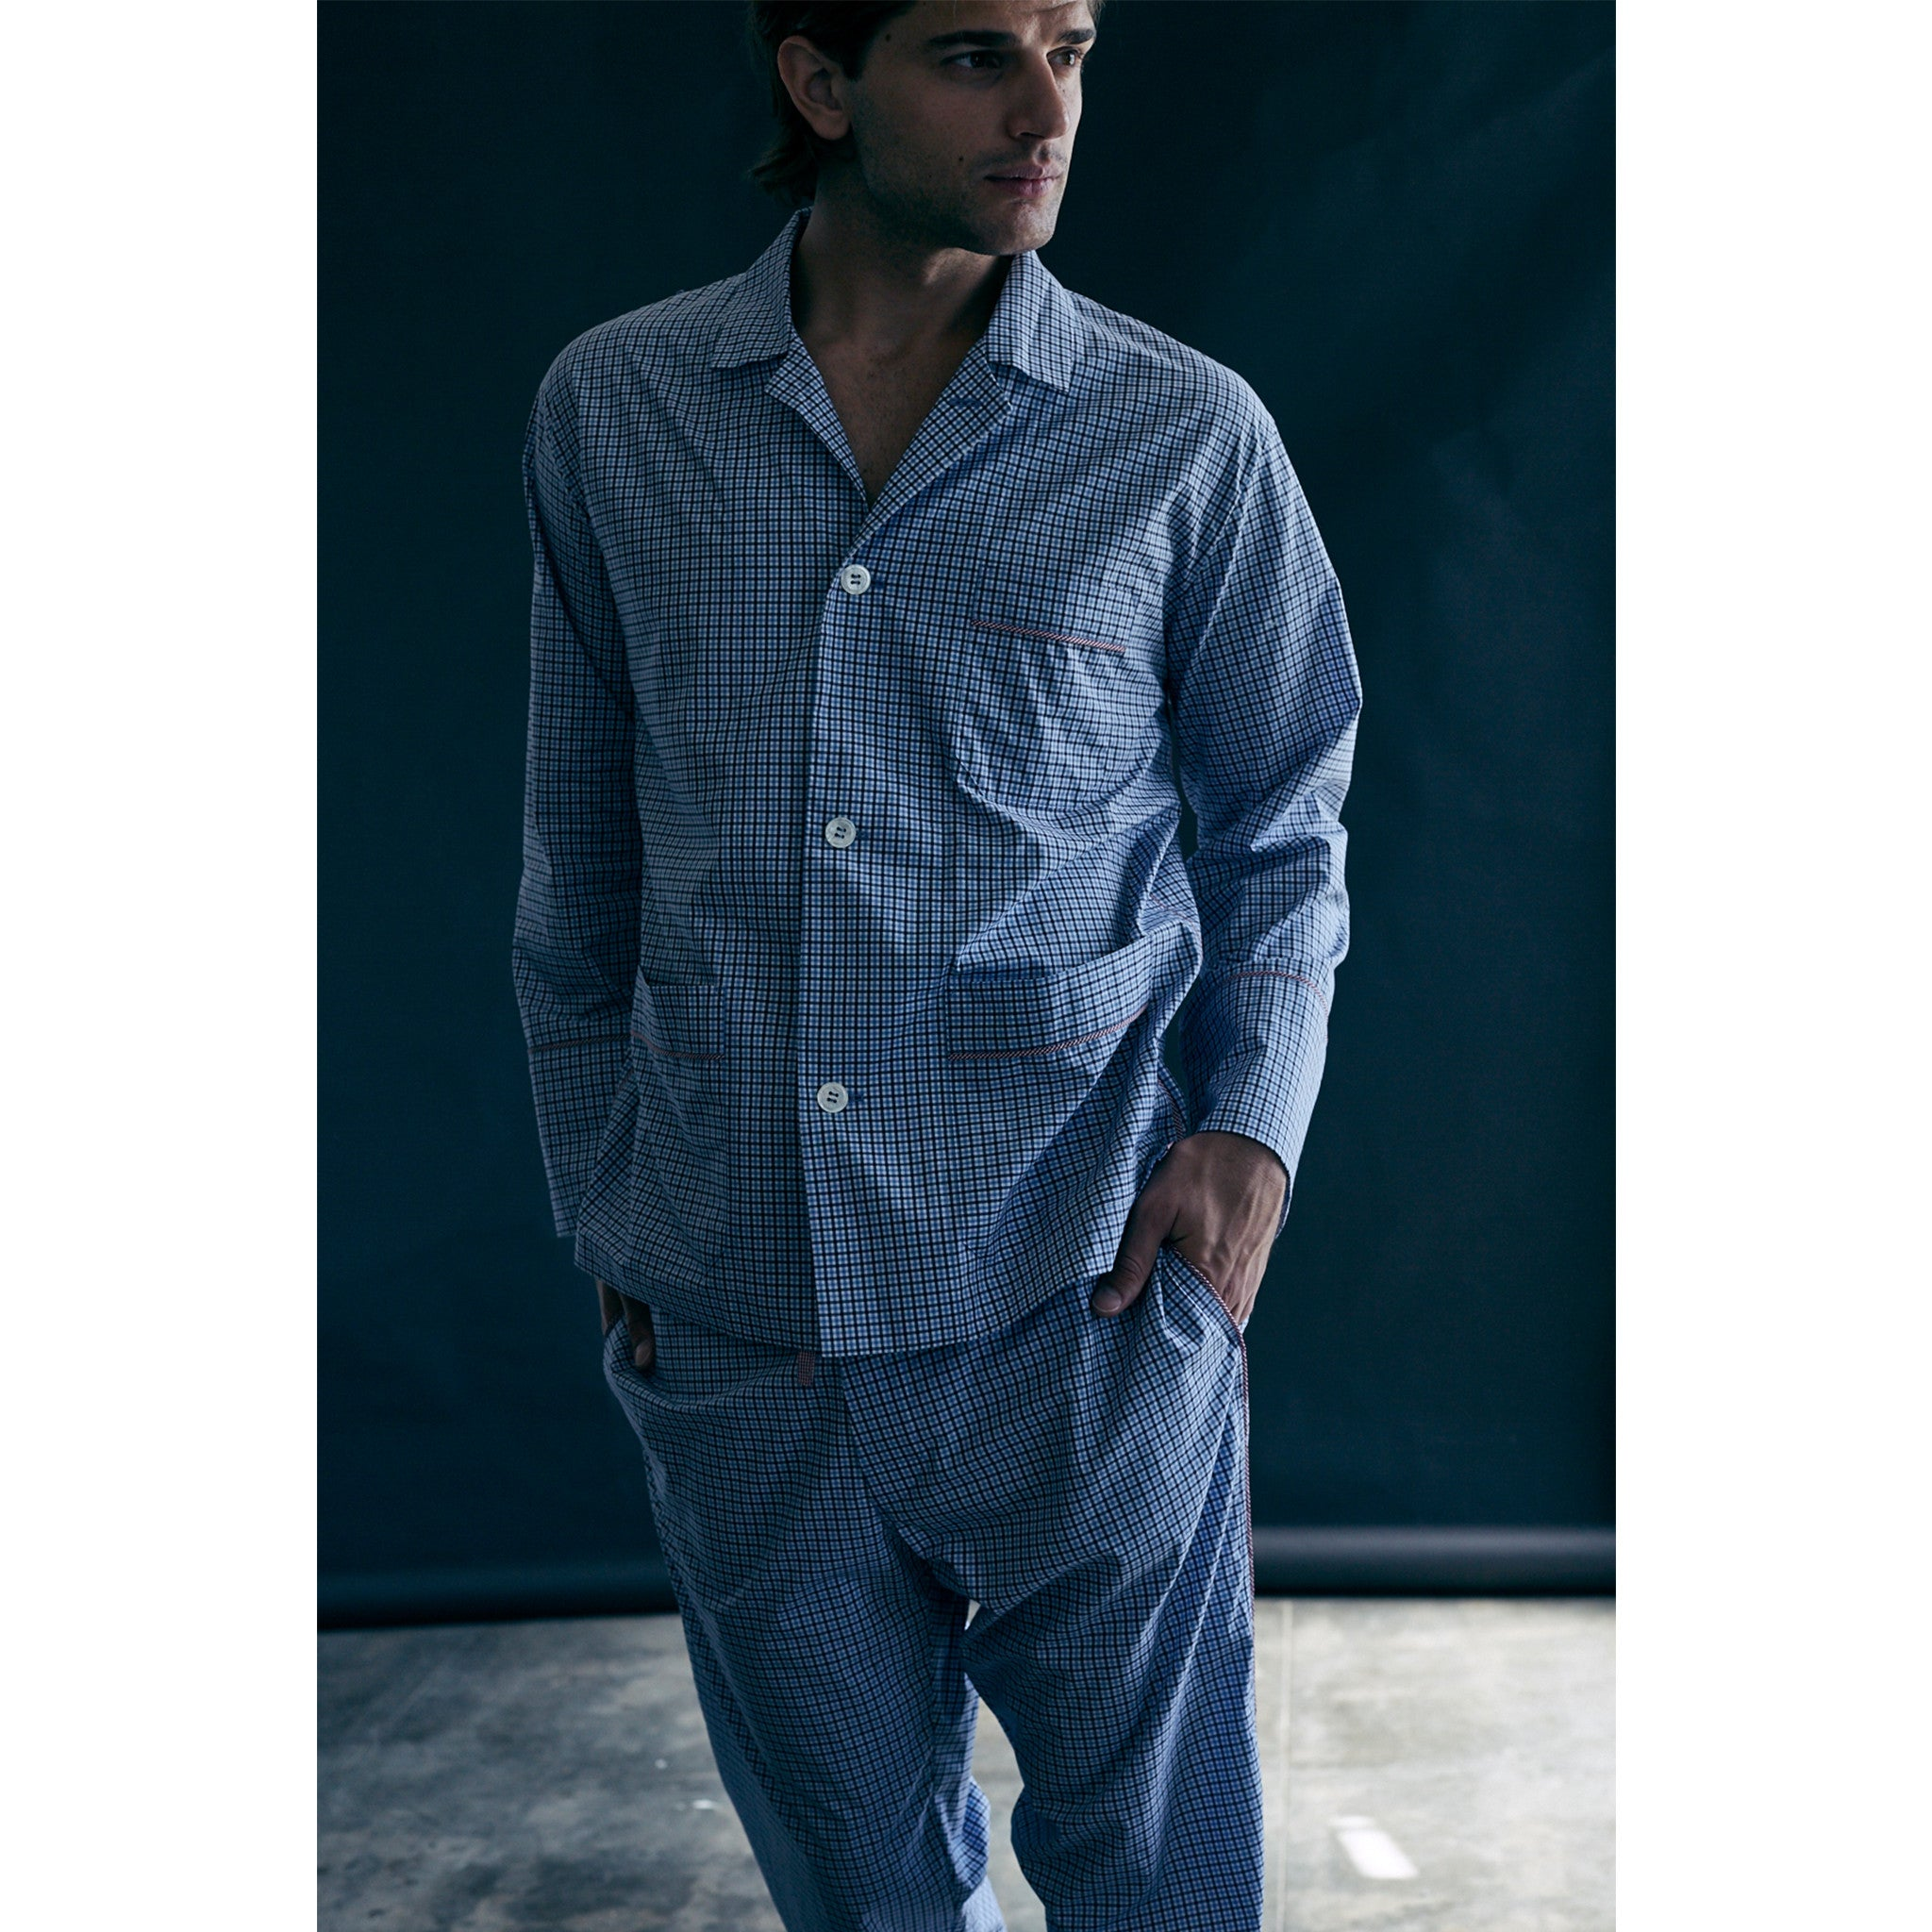 Hyperion Men's Pajama Shirt